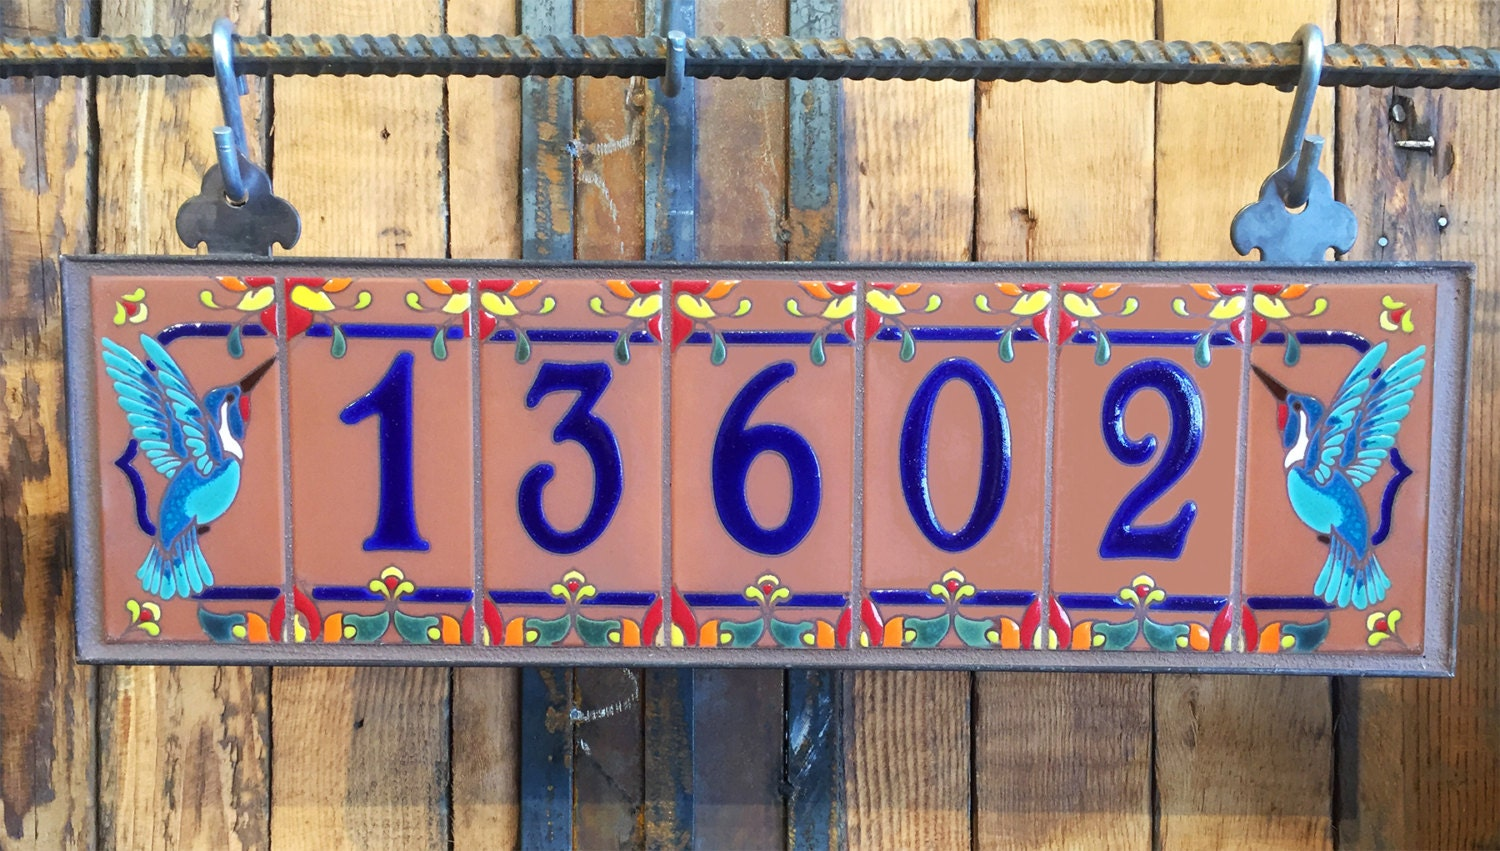 Royal blue on terra cotta ceramic tile house numbers with description custom hand glazed royal blue on terra cotta ceramic tile house address numbers dailygadgetfo Choice Image